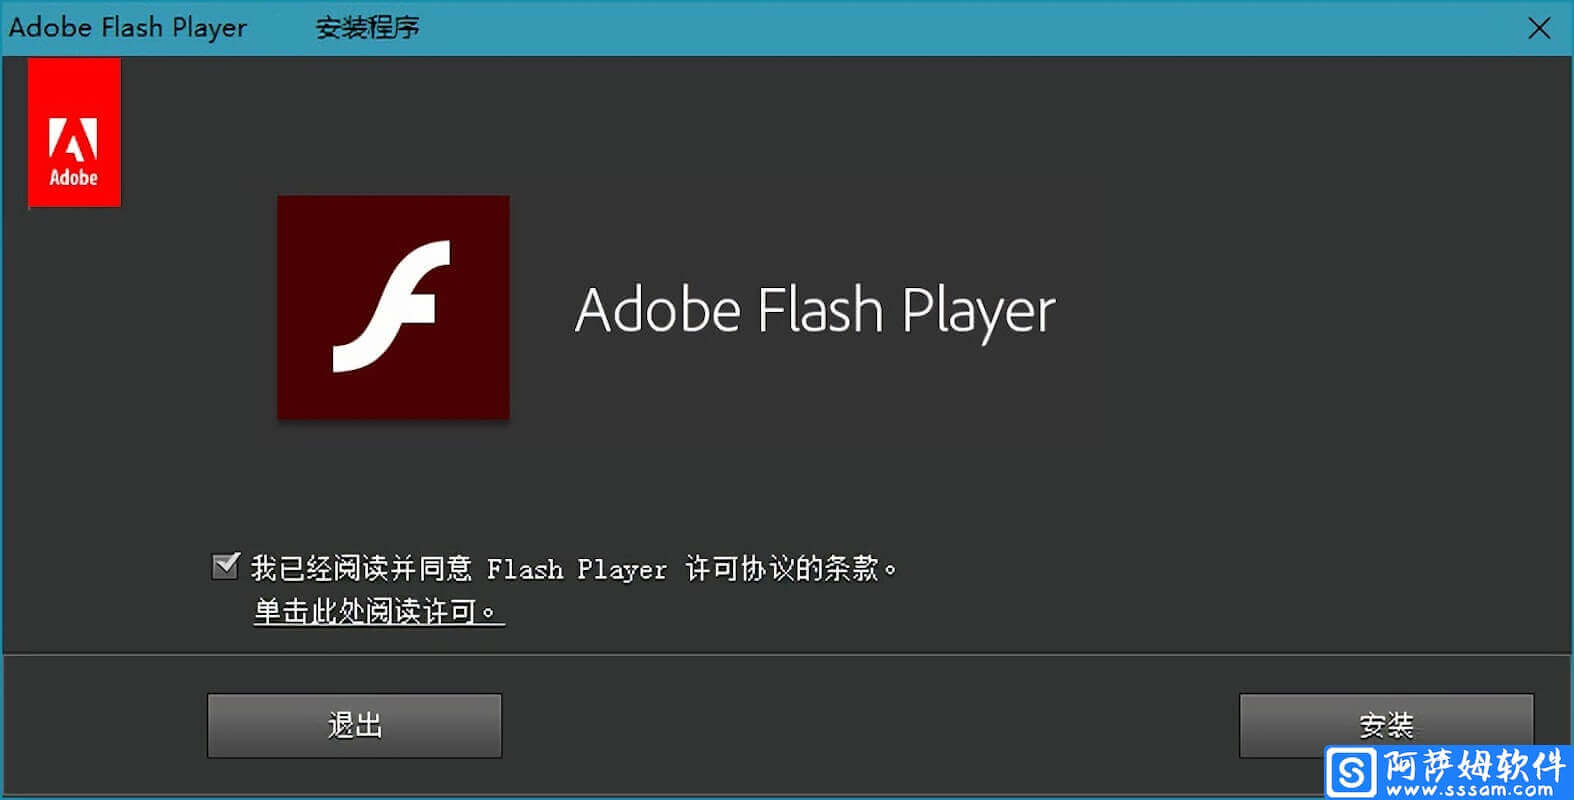 Adobe Flash Player 32.0.0.270 多媒体播放器静默直装版